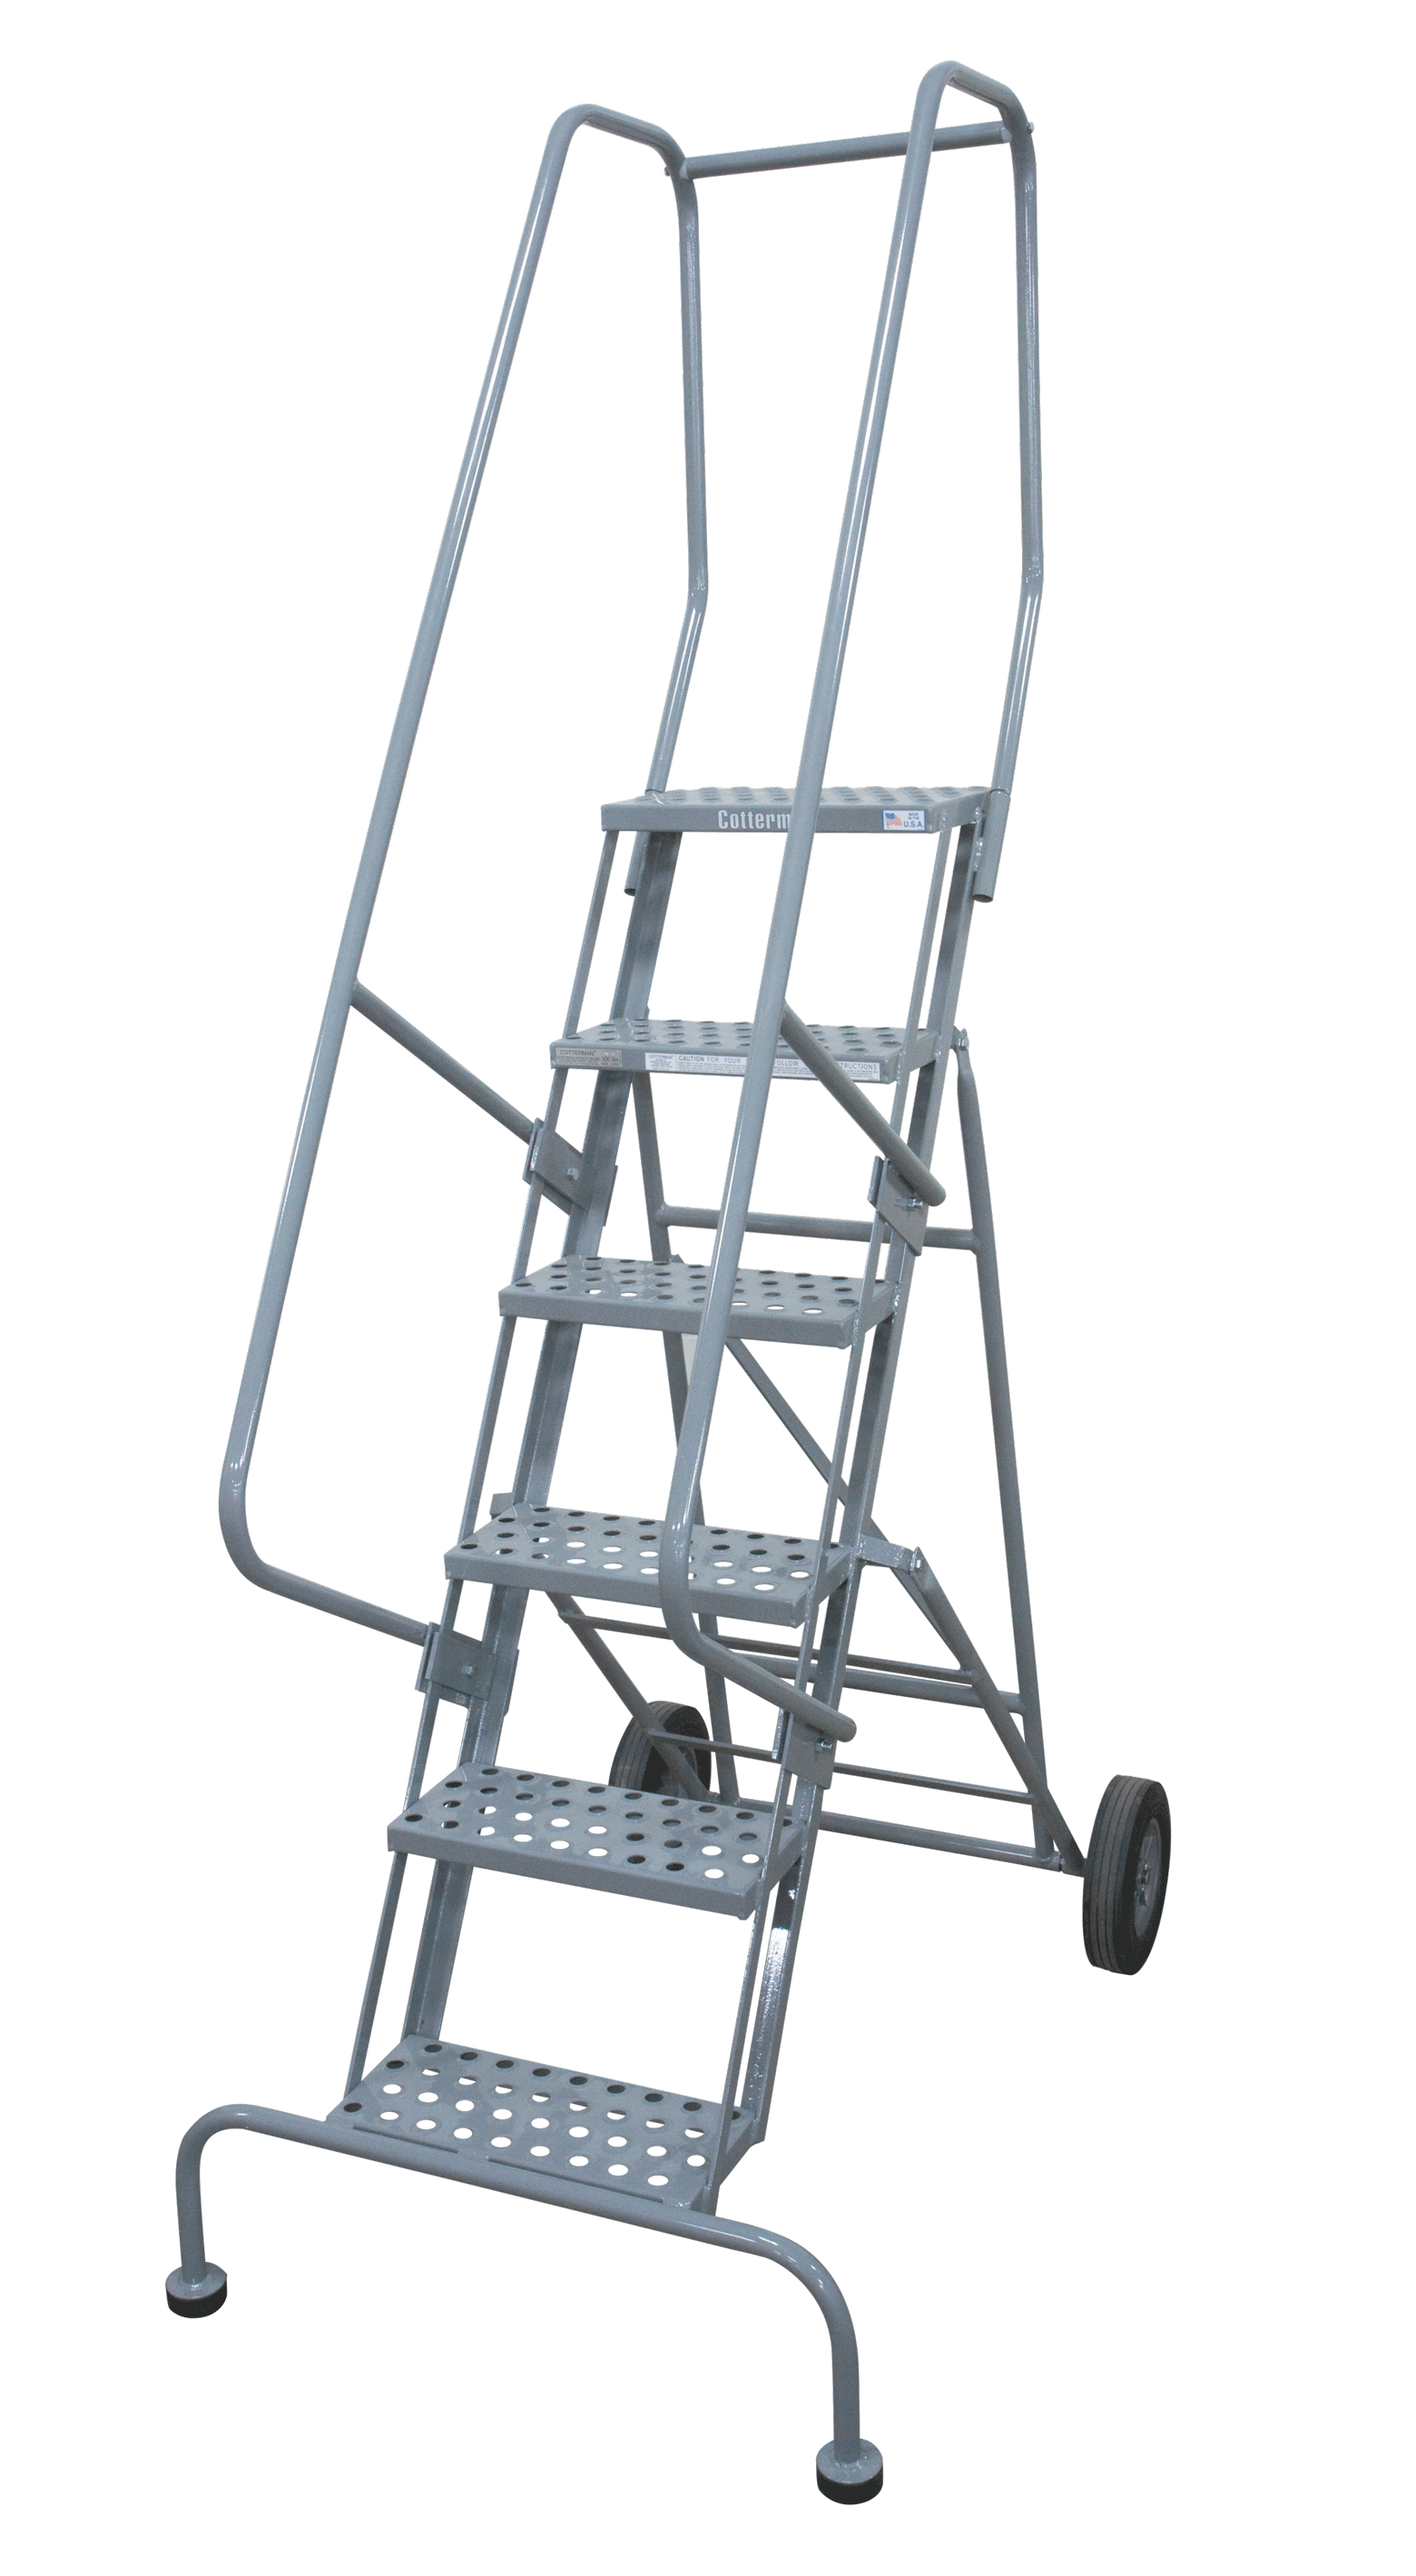 Climbing Ladder Png Climbing Ladder Png In 2020 Ladder Climbing Frame Jacob S Ladder